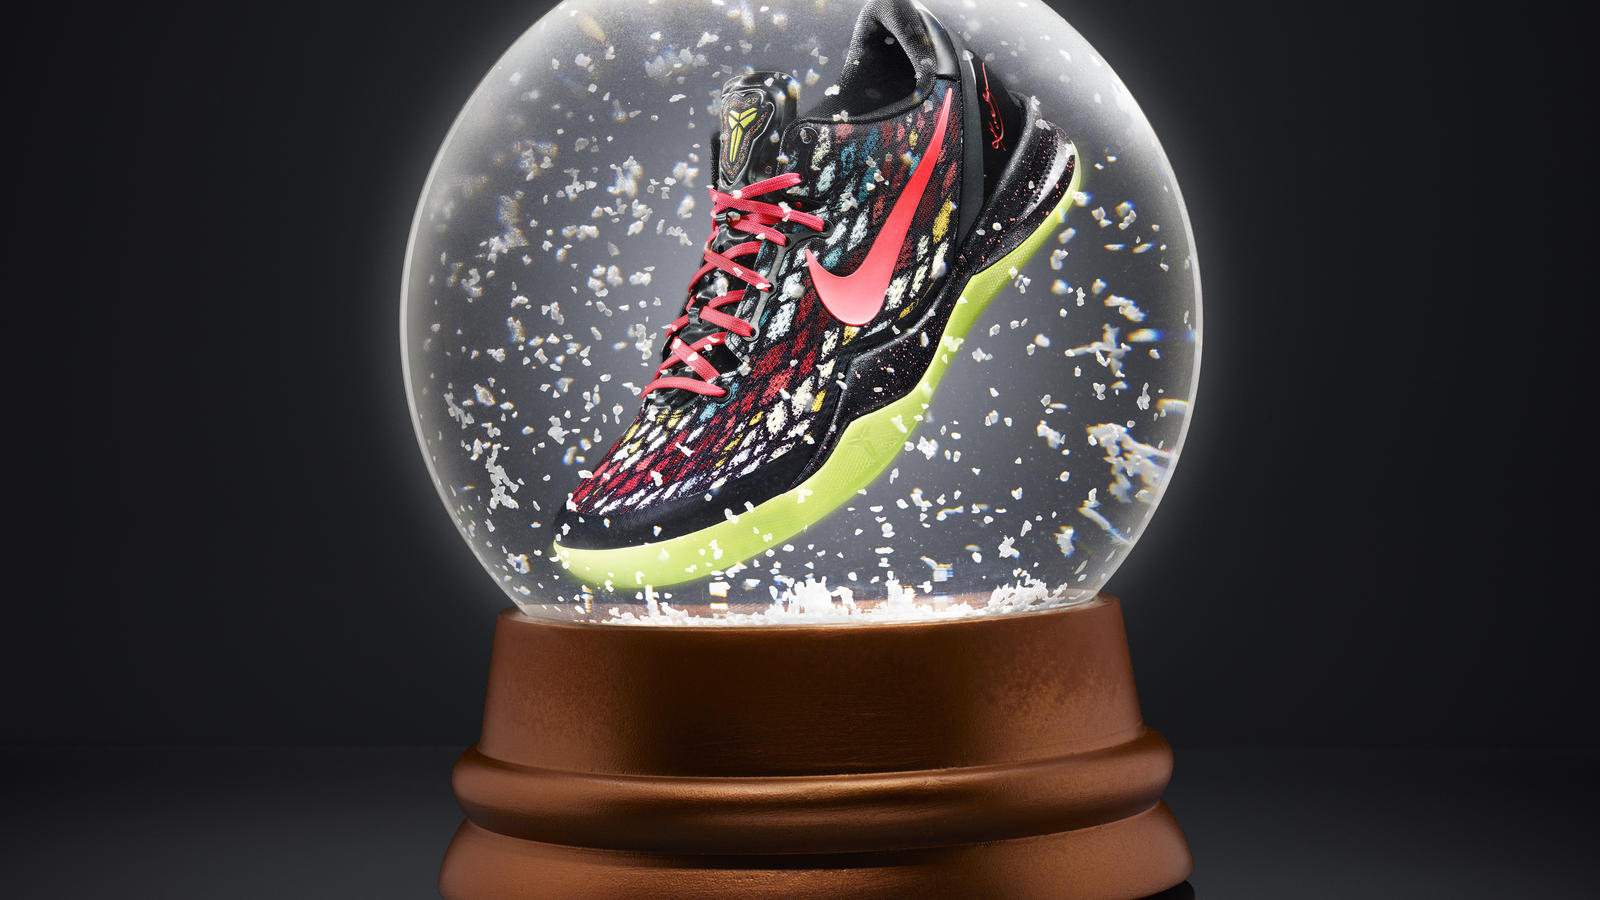 Reembolso Centro comercial Significativo  Tis the season for festive Nike Basketball signature footwear - Nike News